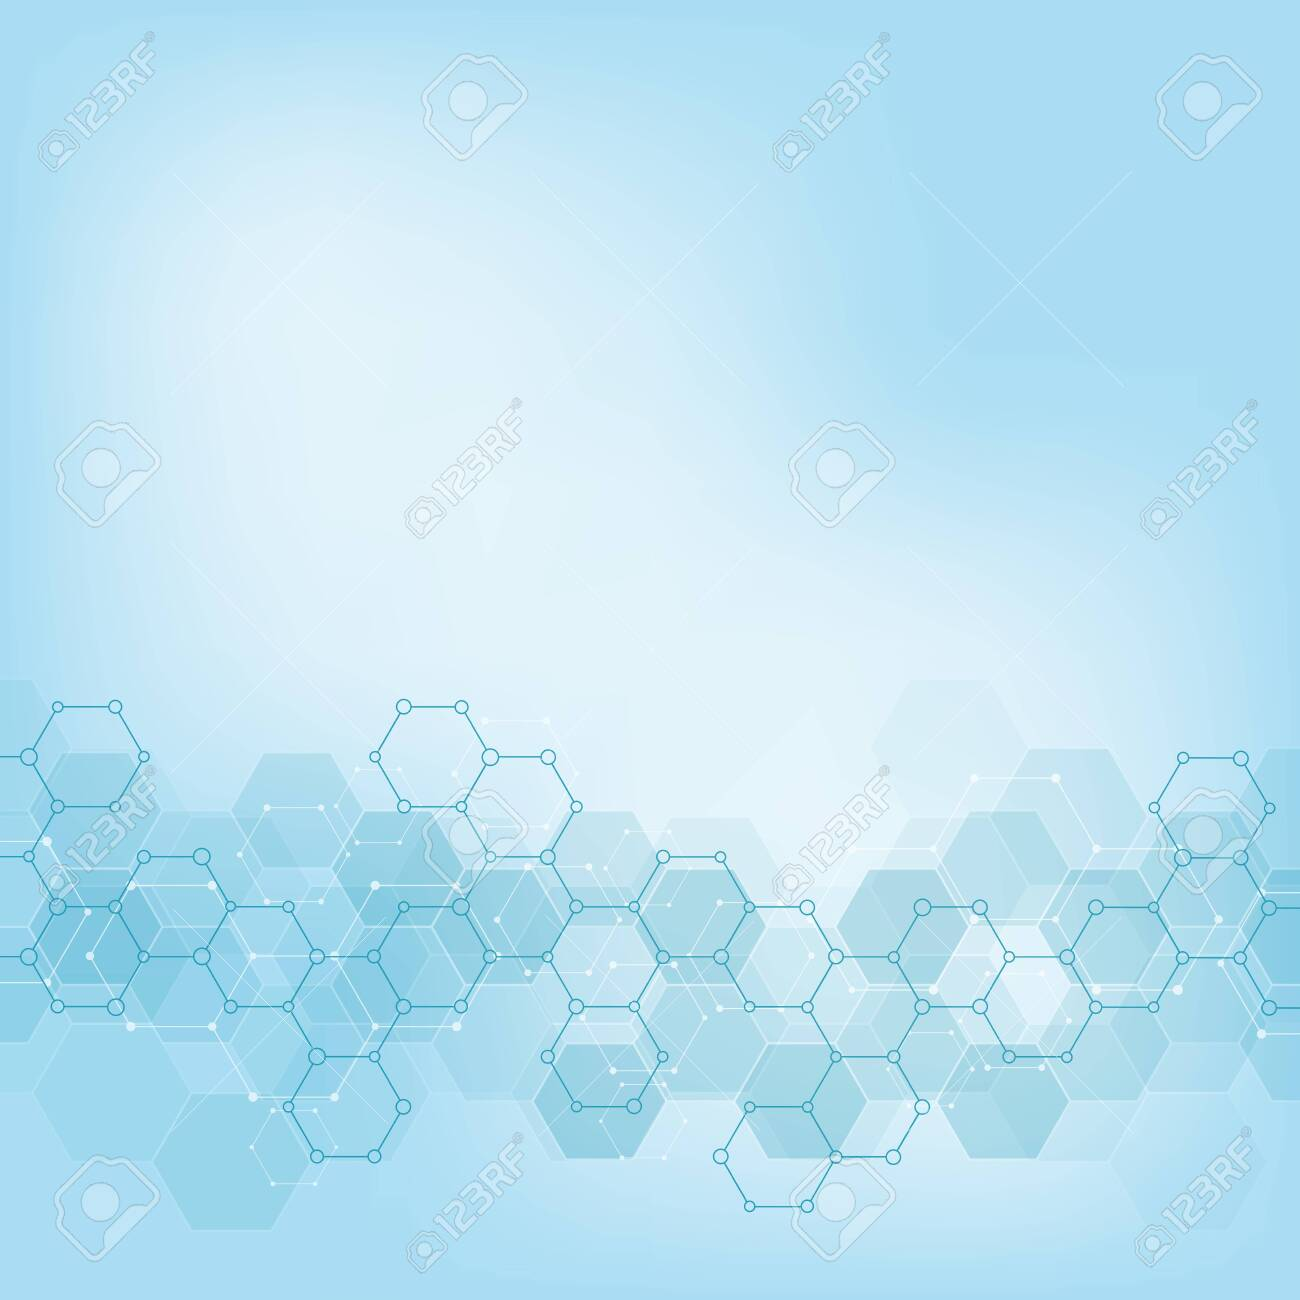 Geometric background texture with molecular structures and chemical engineering. Abstract background of hexagons pattern. Vector illustration for medical or scientific and technological modern design. - 135778474